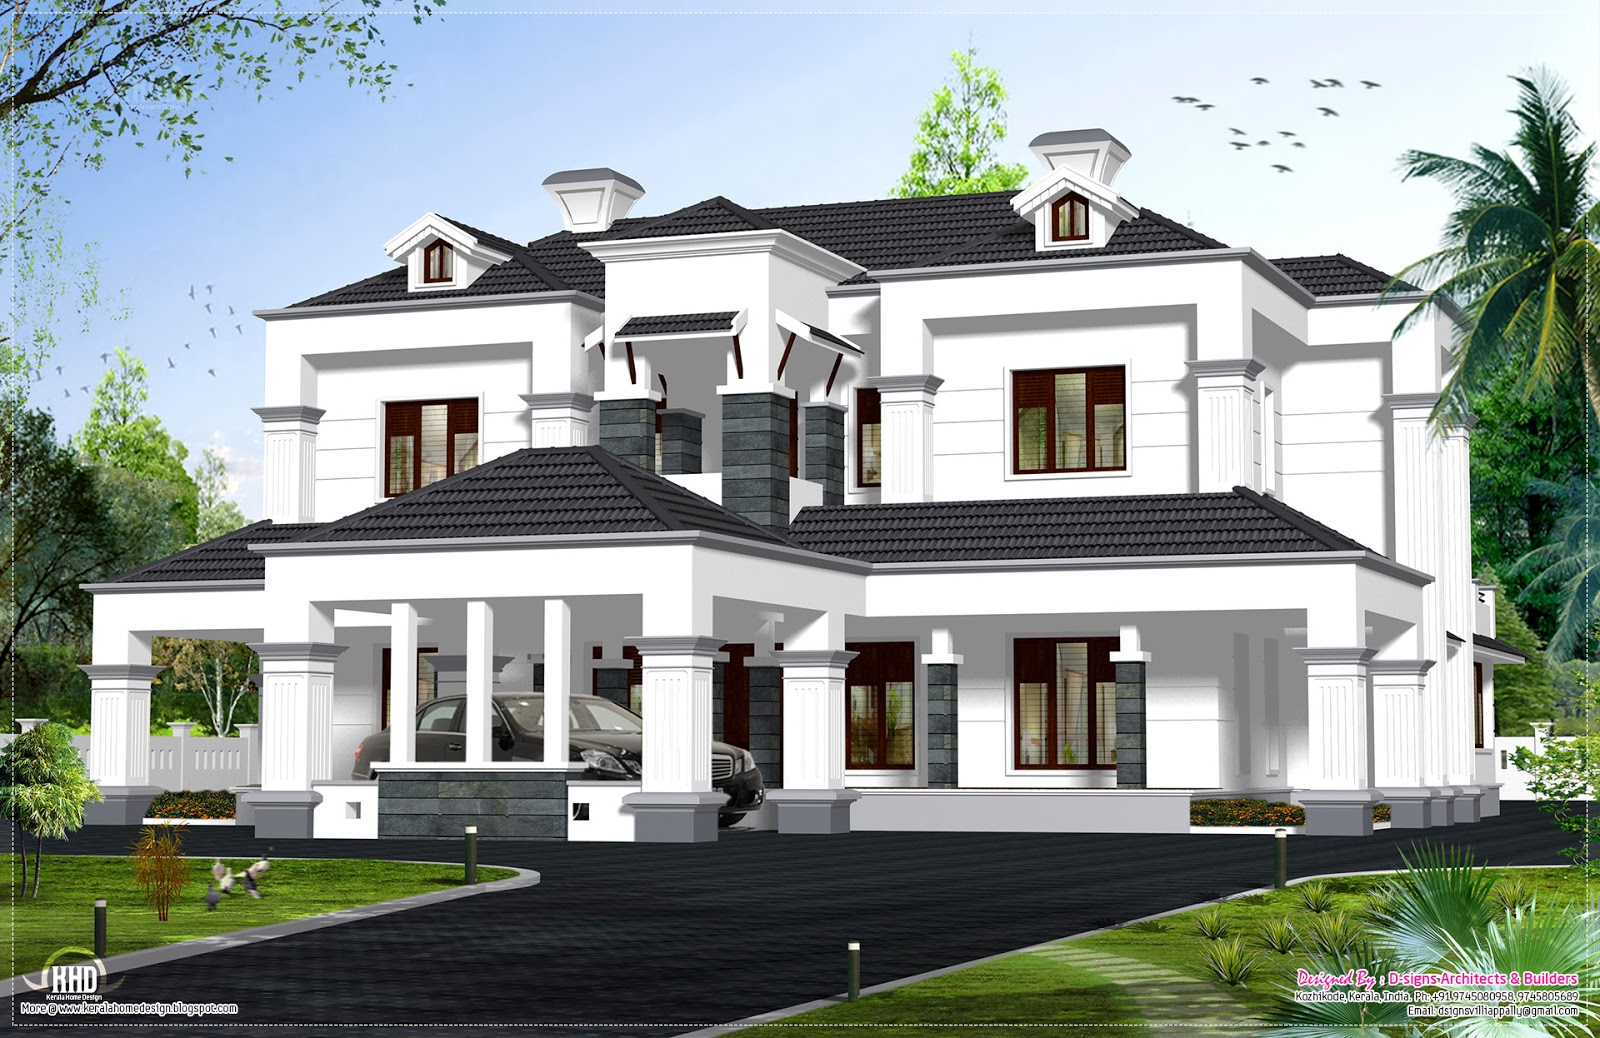 Victorian model house exterior kerala home design and for Homes models and plans